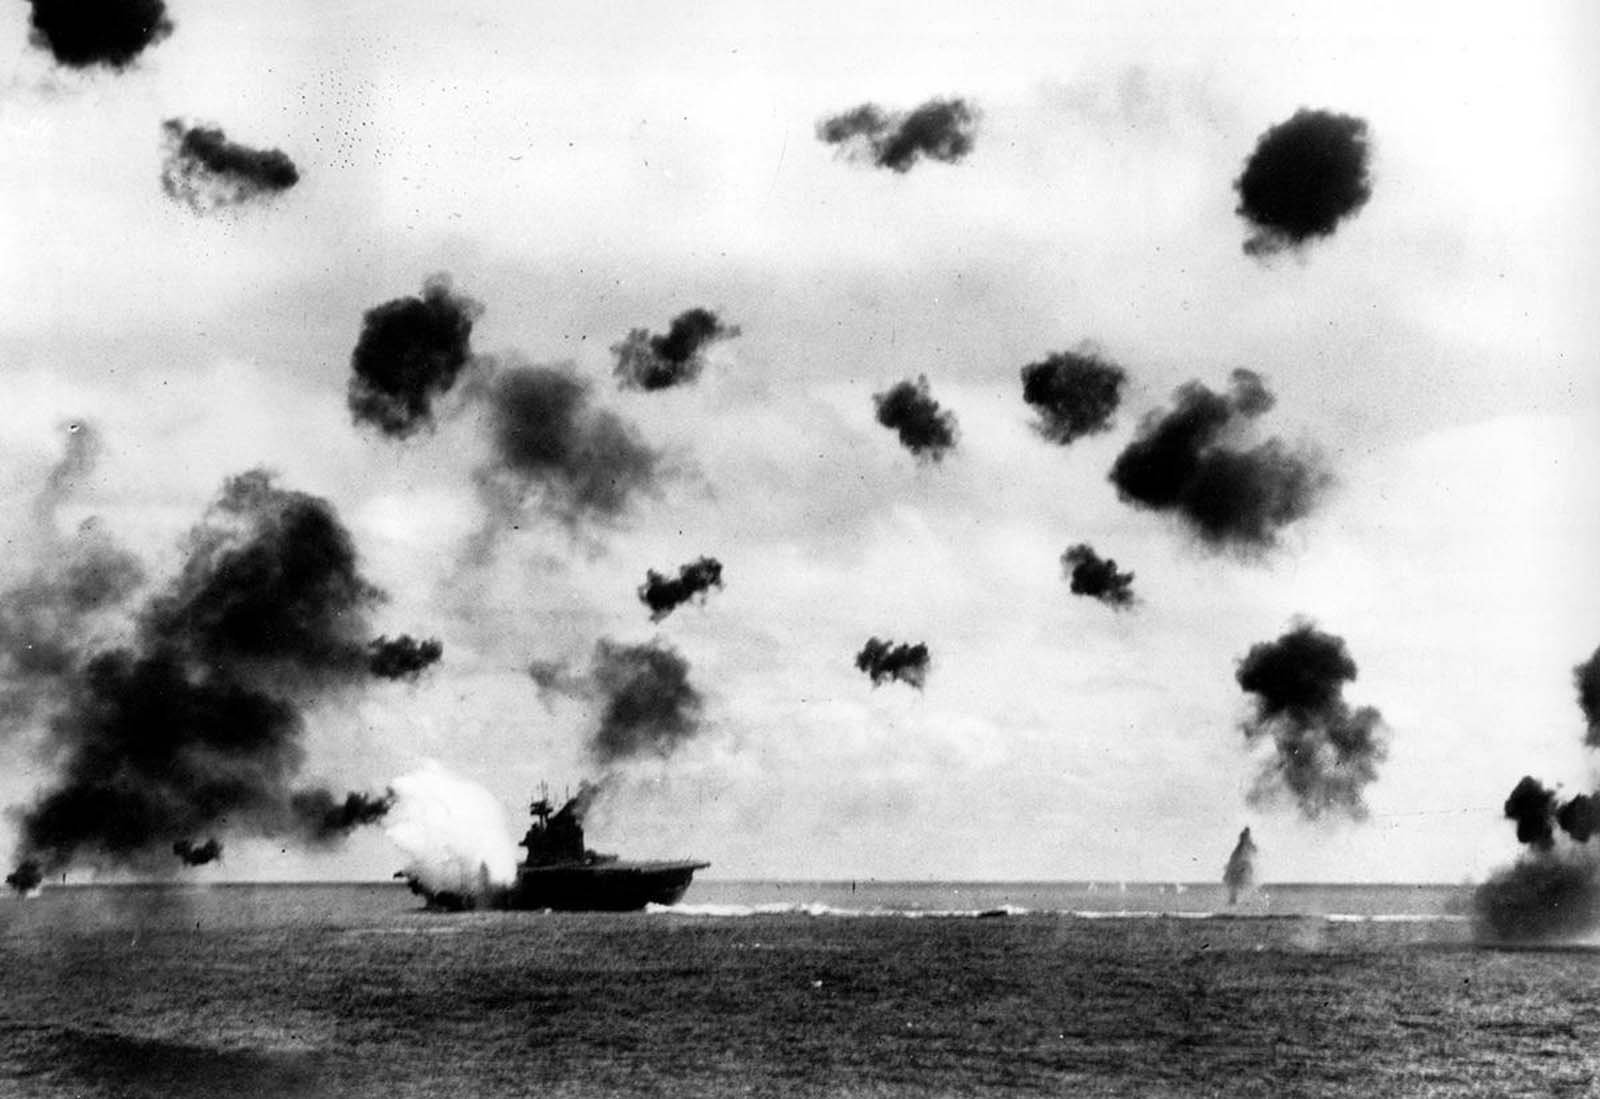 Smoke rises from the USS Yorktown after a Japanese bomber hit the aircraft carrier in the Battle of Midway on June 4, 1942. Bursts from anti-aircraft fire fill the air.